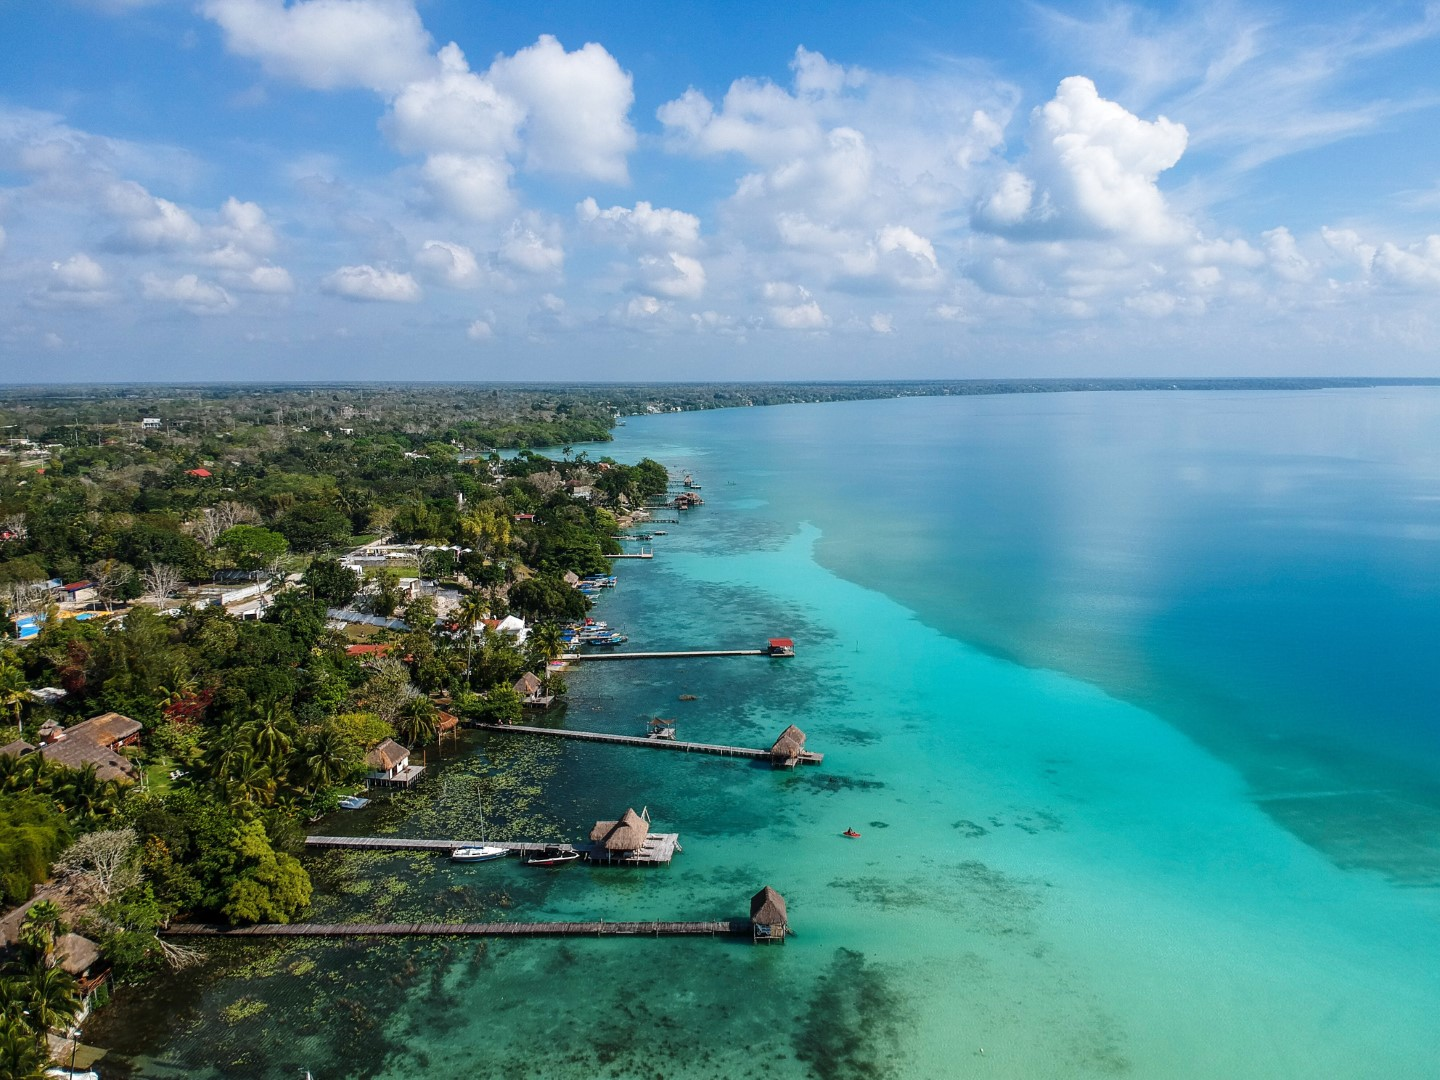 Aerial view of Laguna Bacalar